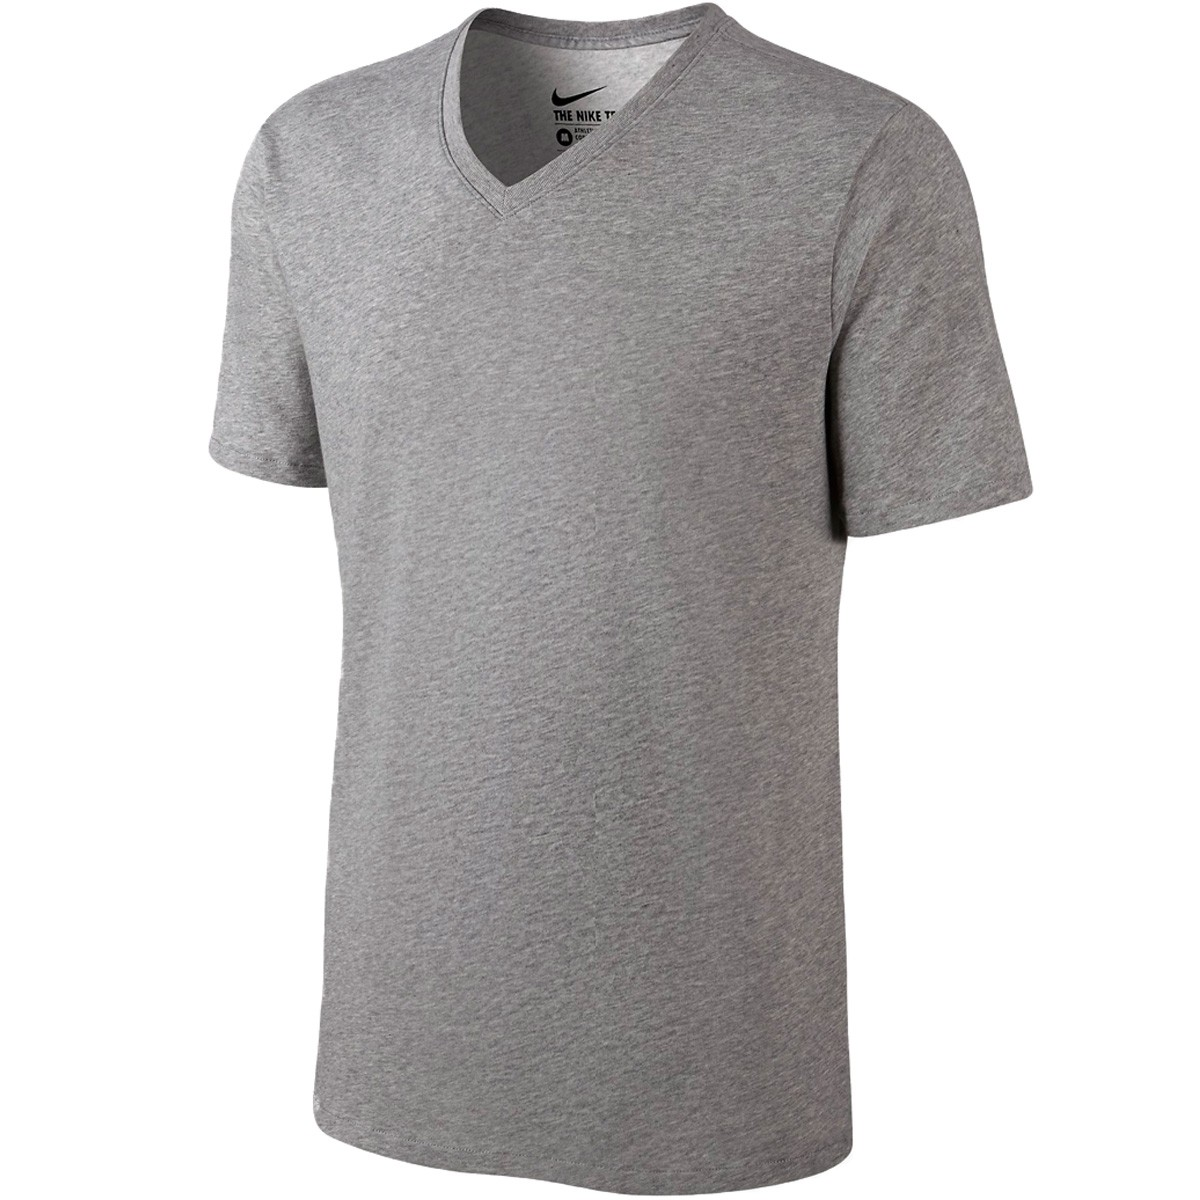 The Cheapest Cheap Online Cheap Shop Offer v neck t-shirt - White Egrey Newest Online Outlet 2018 Unisex ogcB4kfQr3